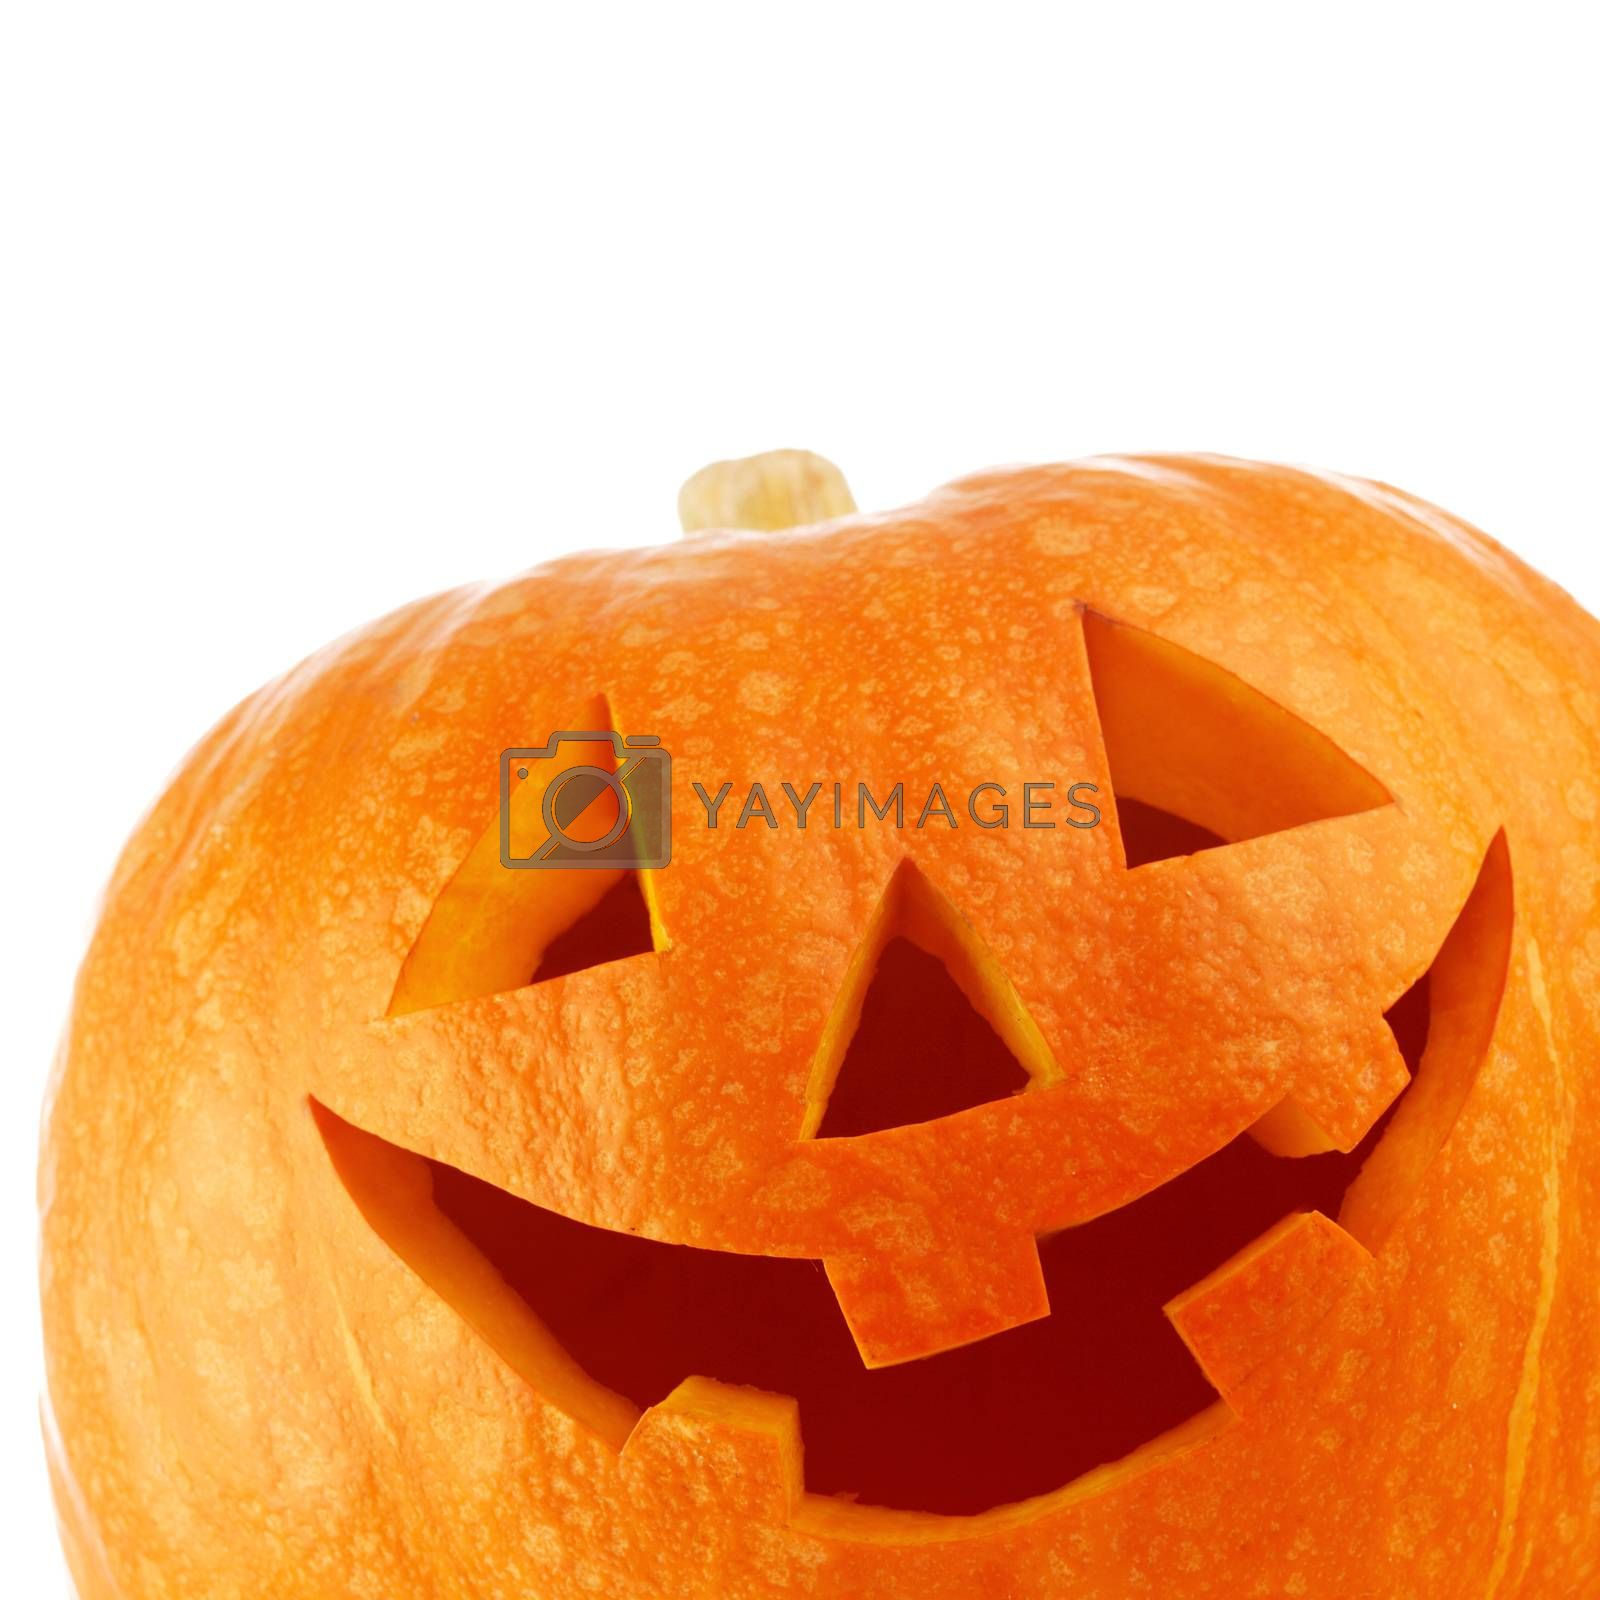 Funny Halloween Jack O' Lantern carved pumpkin isolated on white background